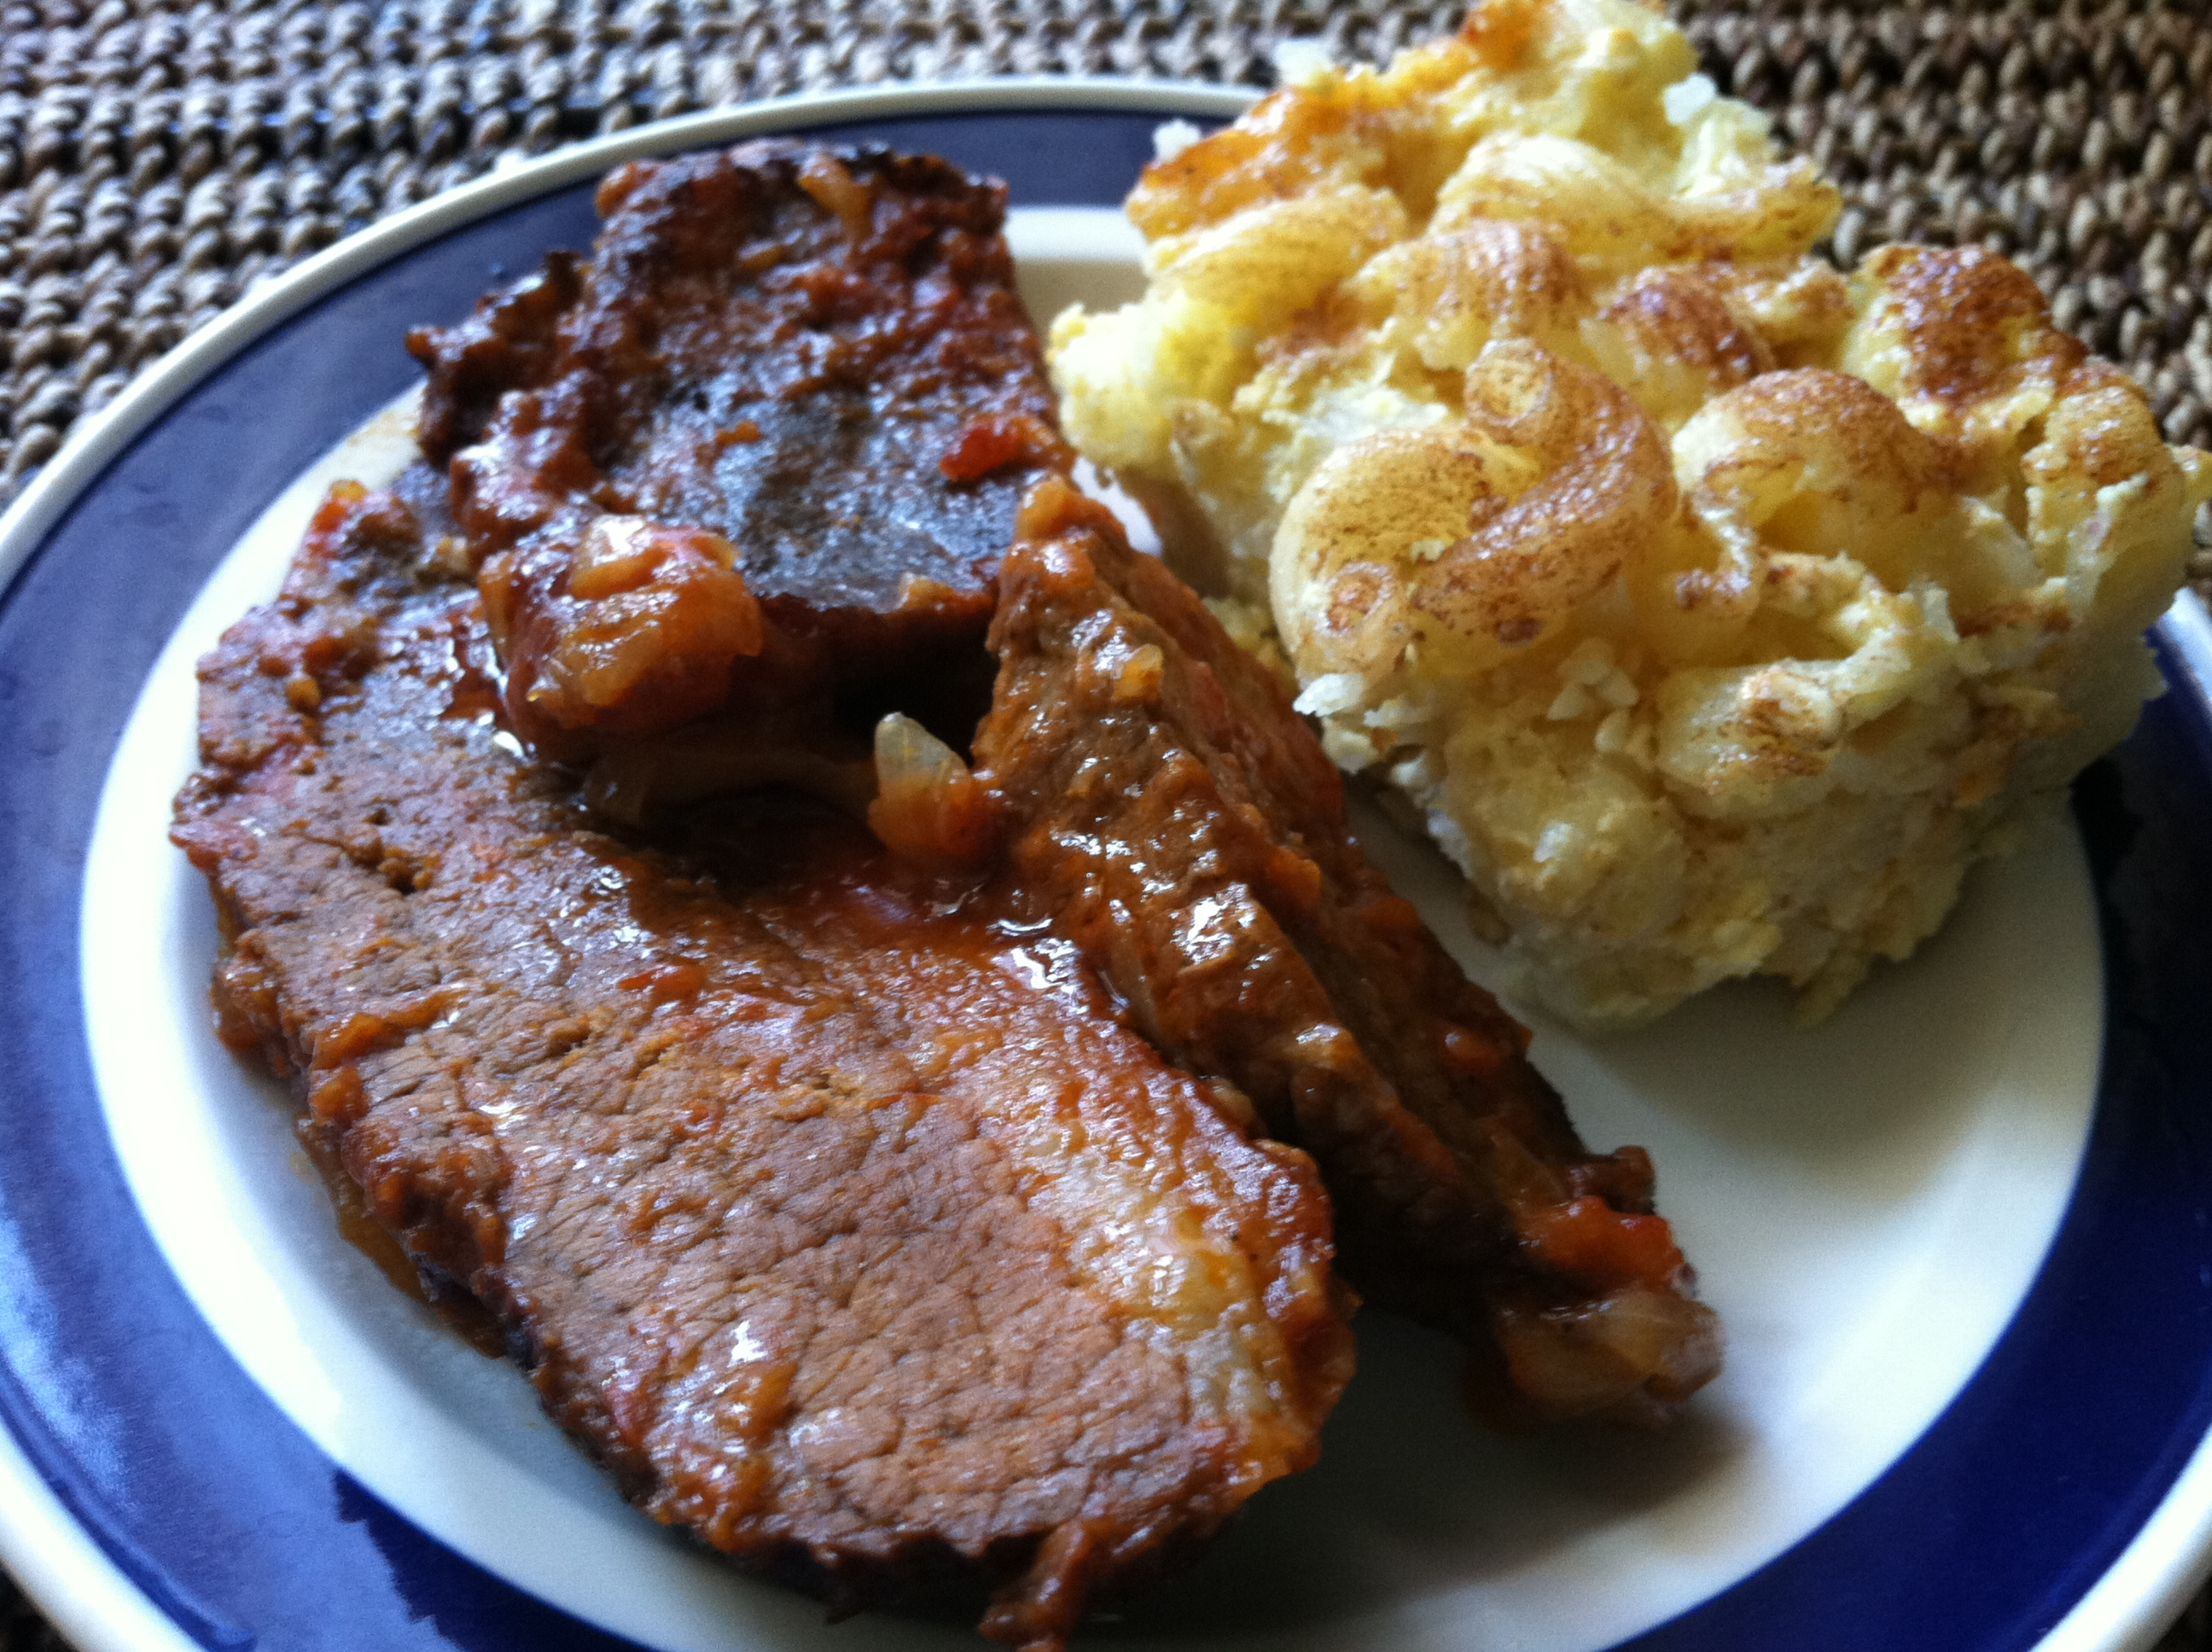 Gluten-Free Kugel & Brisket When You're Allergic to ...